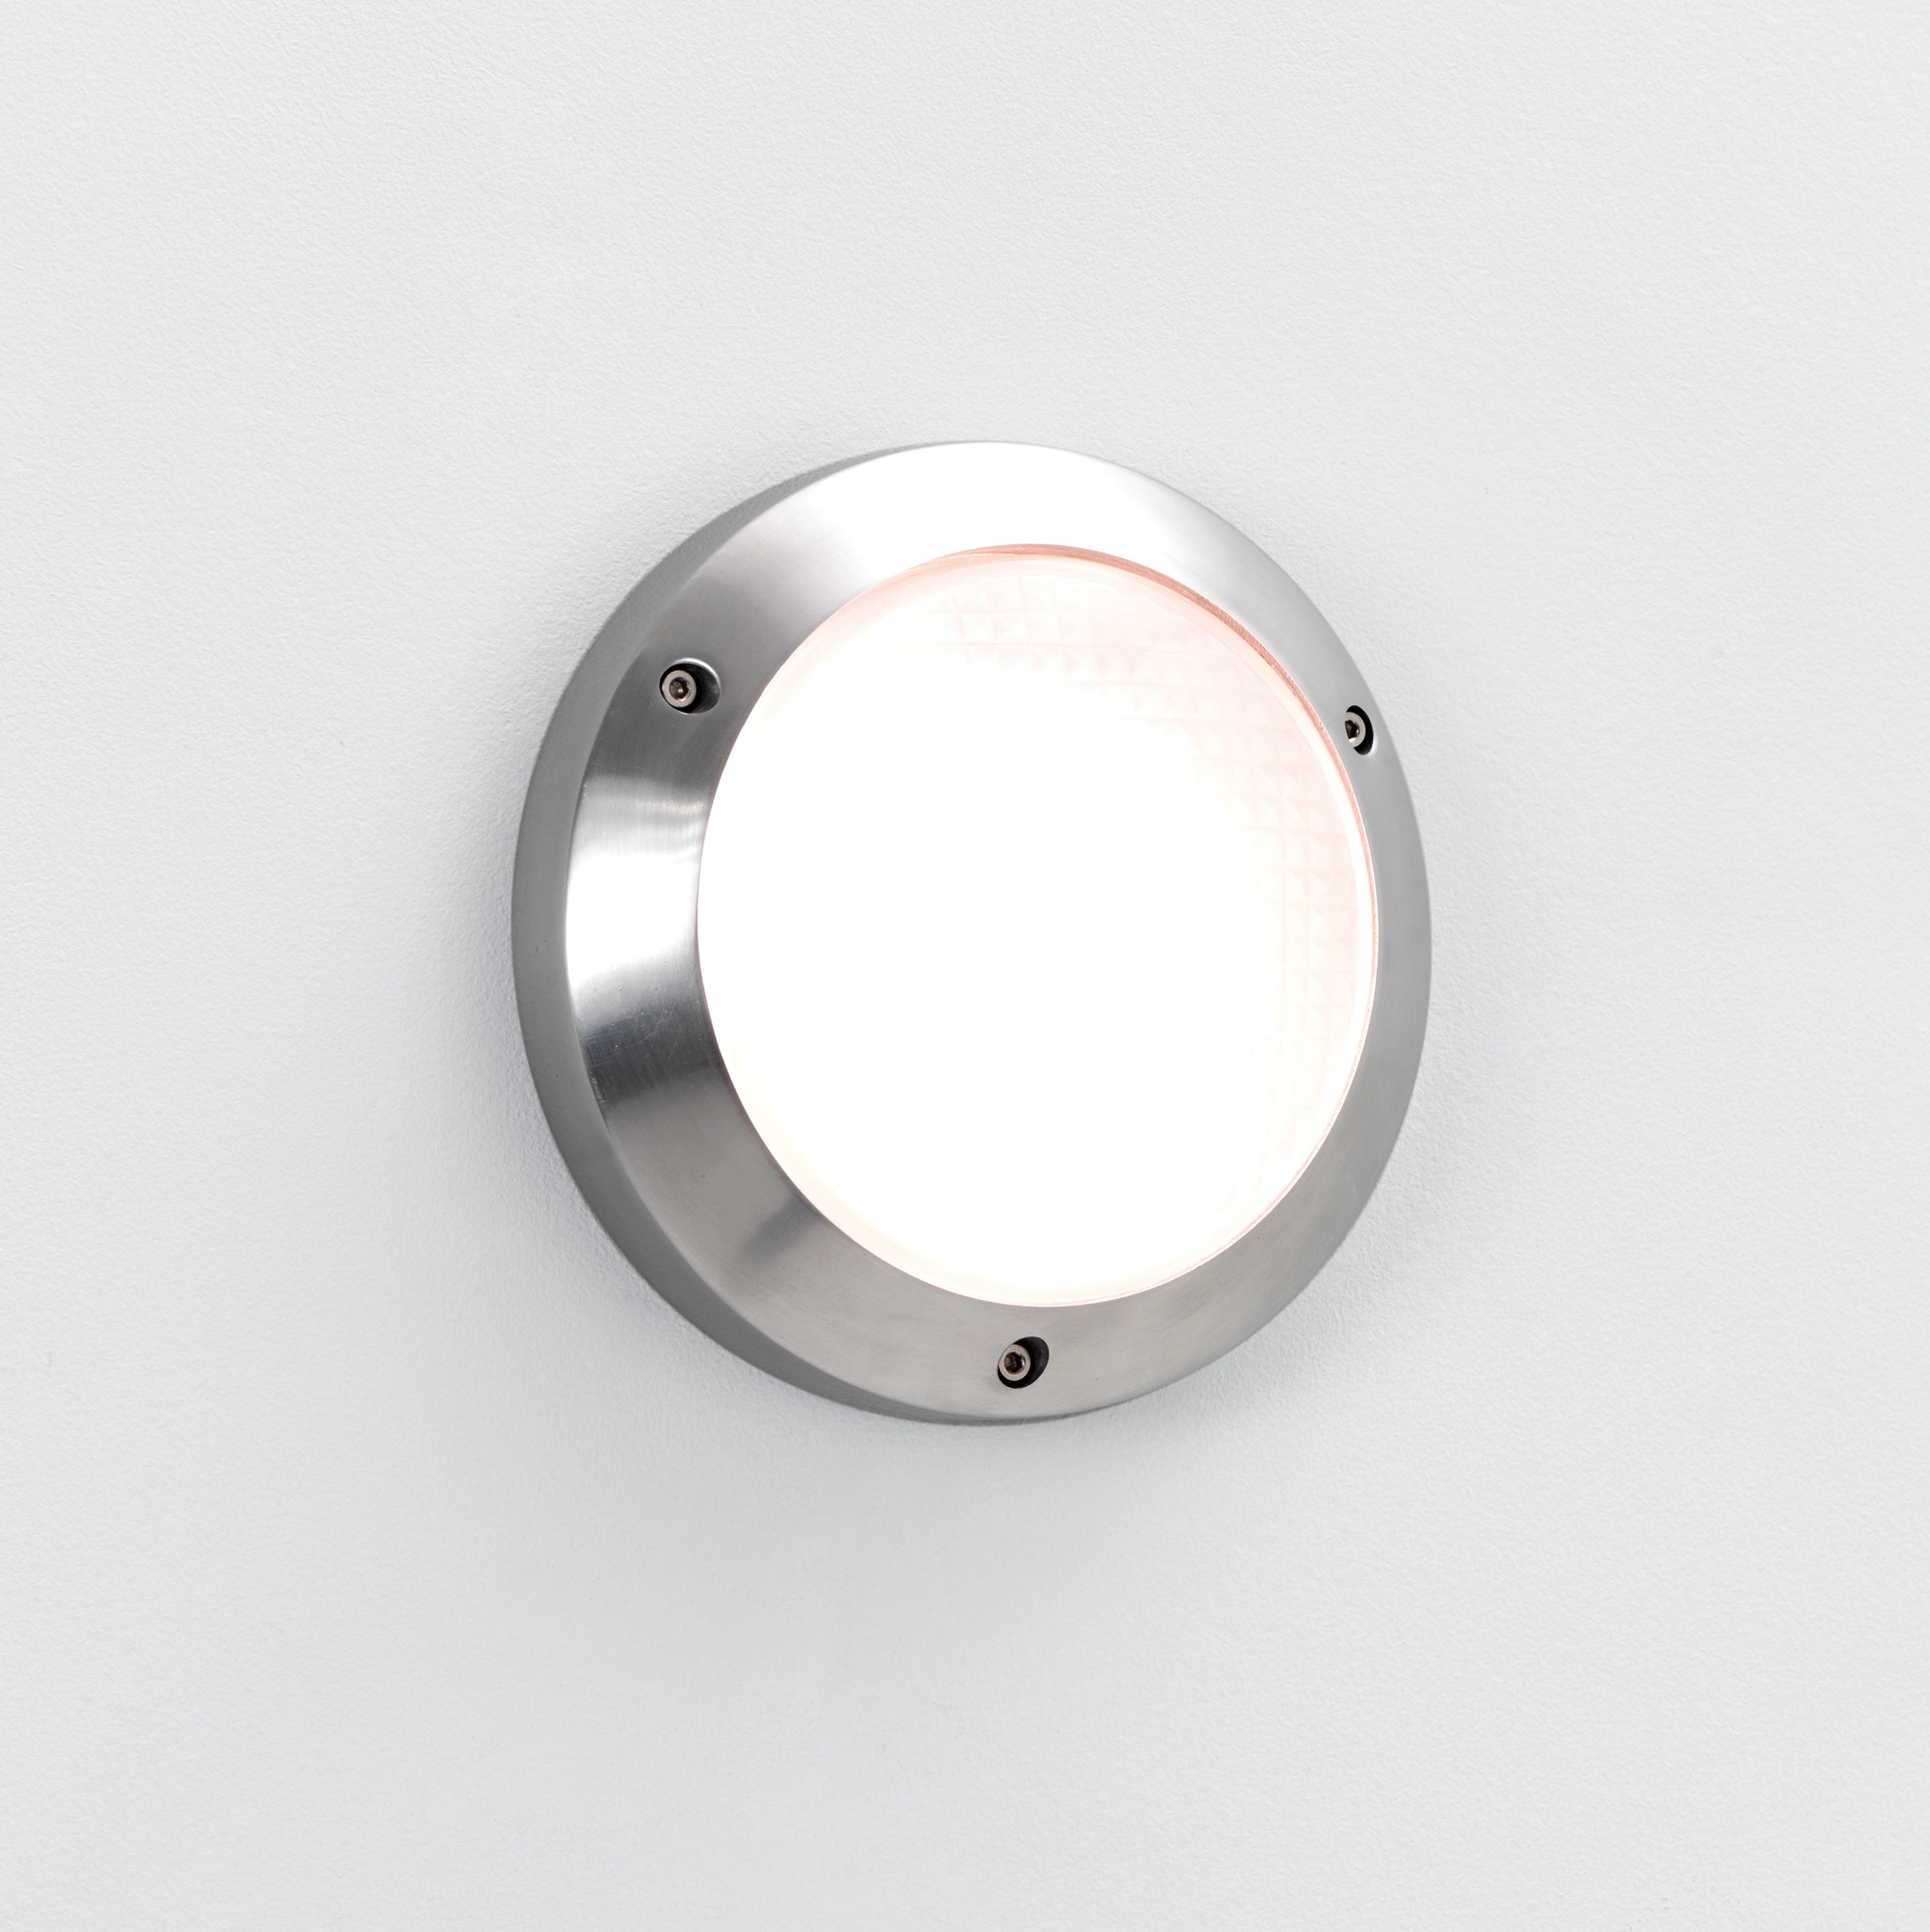 ASTRO Toronto Plus 170 0604 round bathroom wall light 1 X 9W GX53 lamp aluminium Thumbnail 1